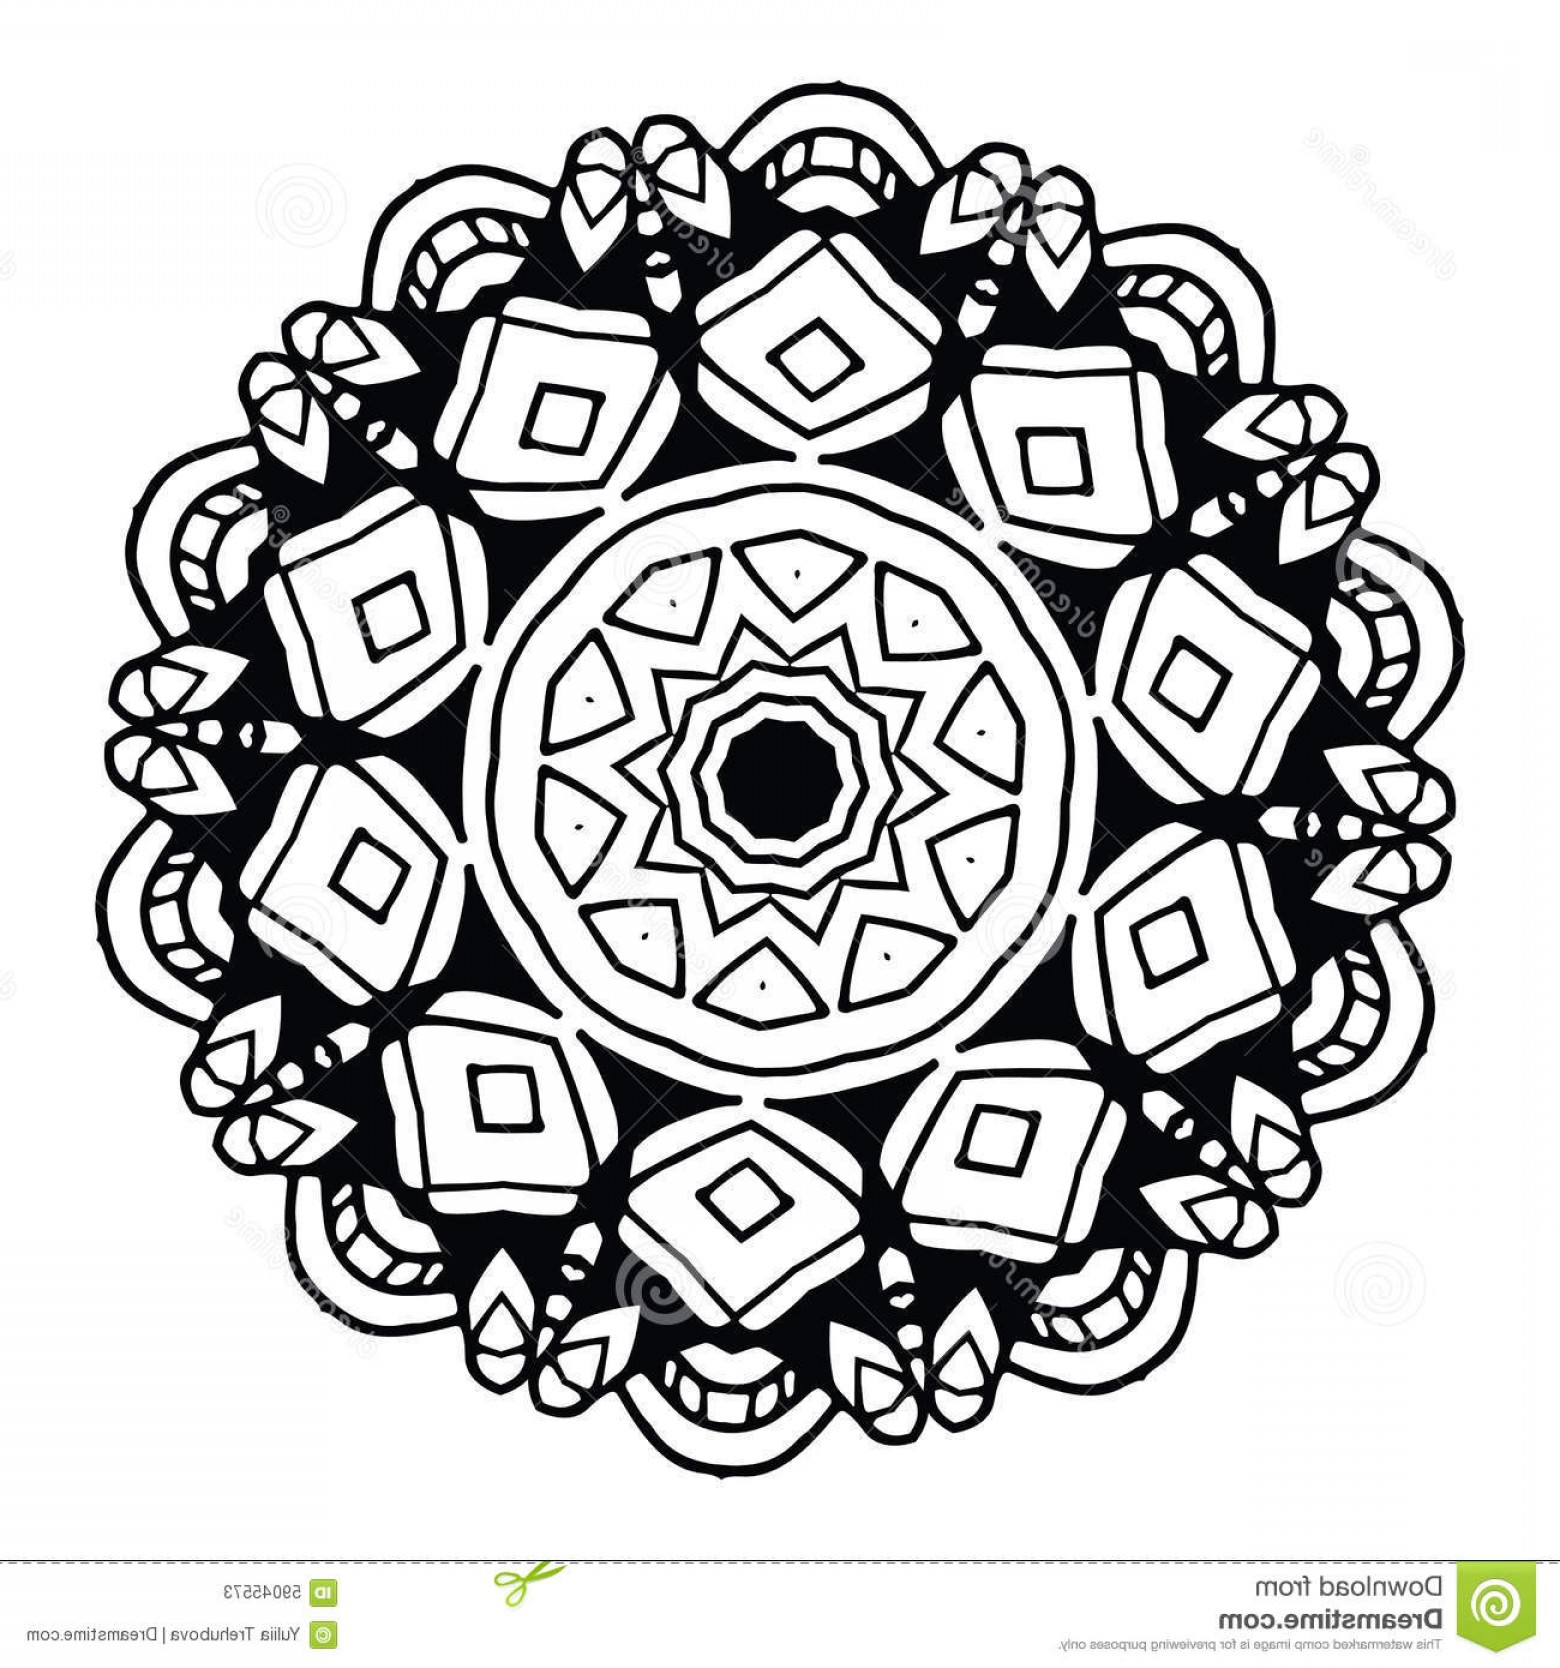 Black And White Circle Vector Graphics: Stock Illustration Abstract Design Black White Element Round Mandala Vector Graphic Template Your Design Circular Pattern Image